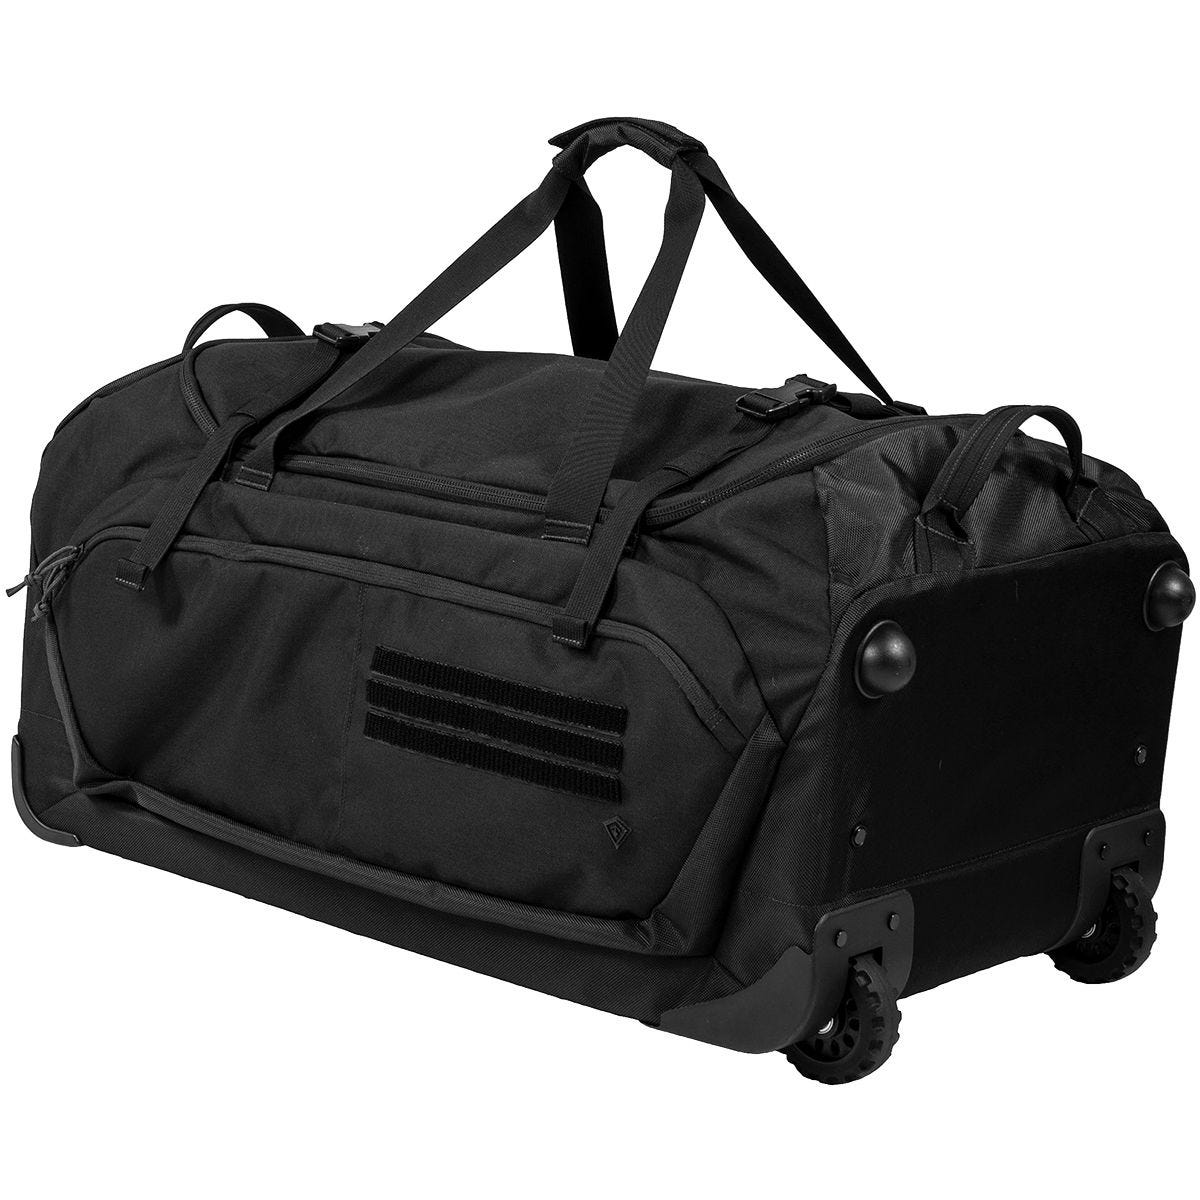 The First Tactical Specialist Rolling Duffle travel product recommended by Lukas on Lifney.